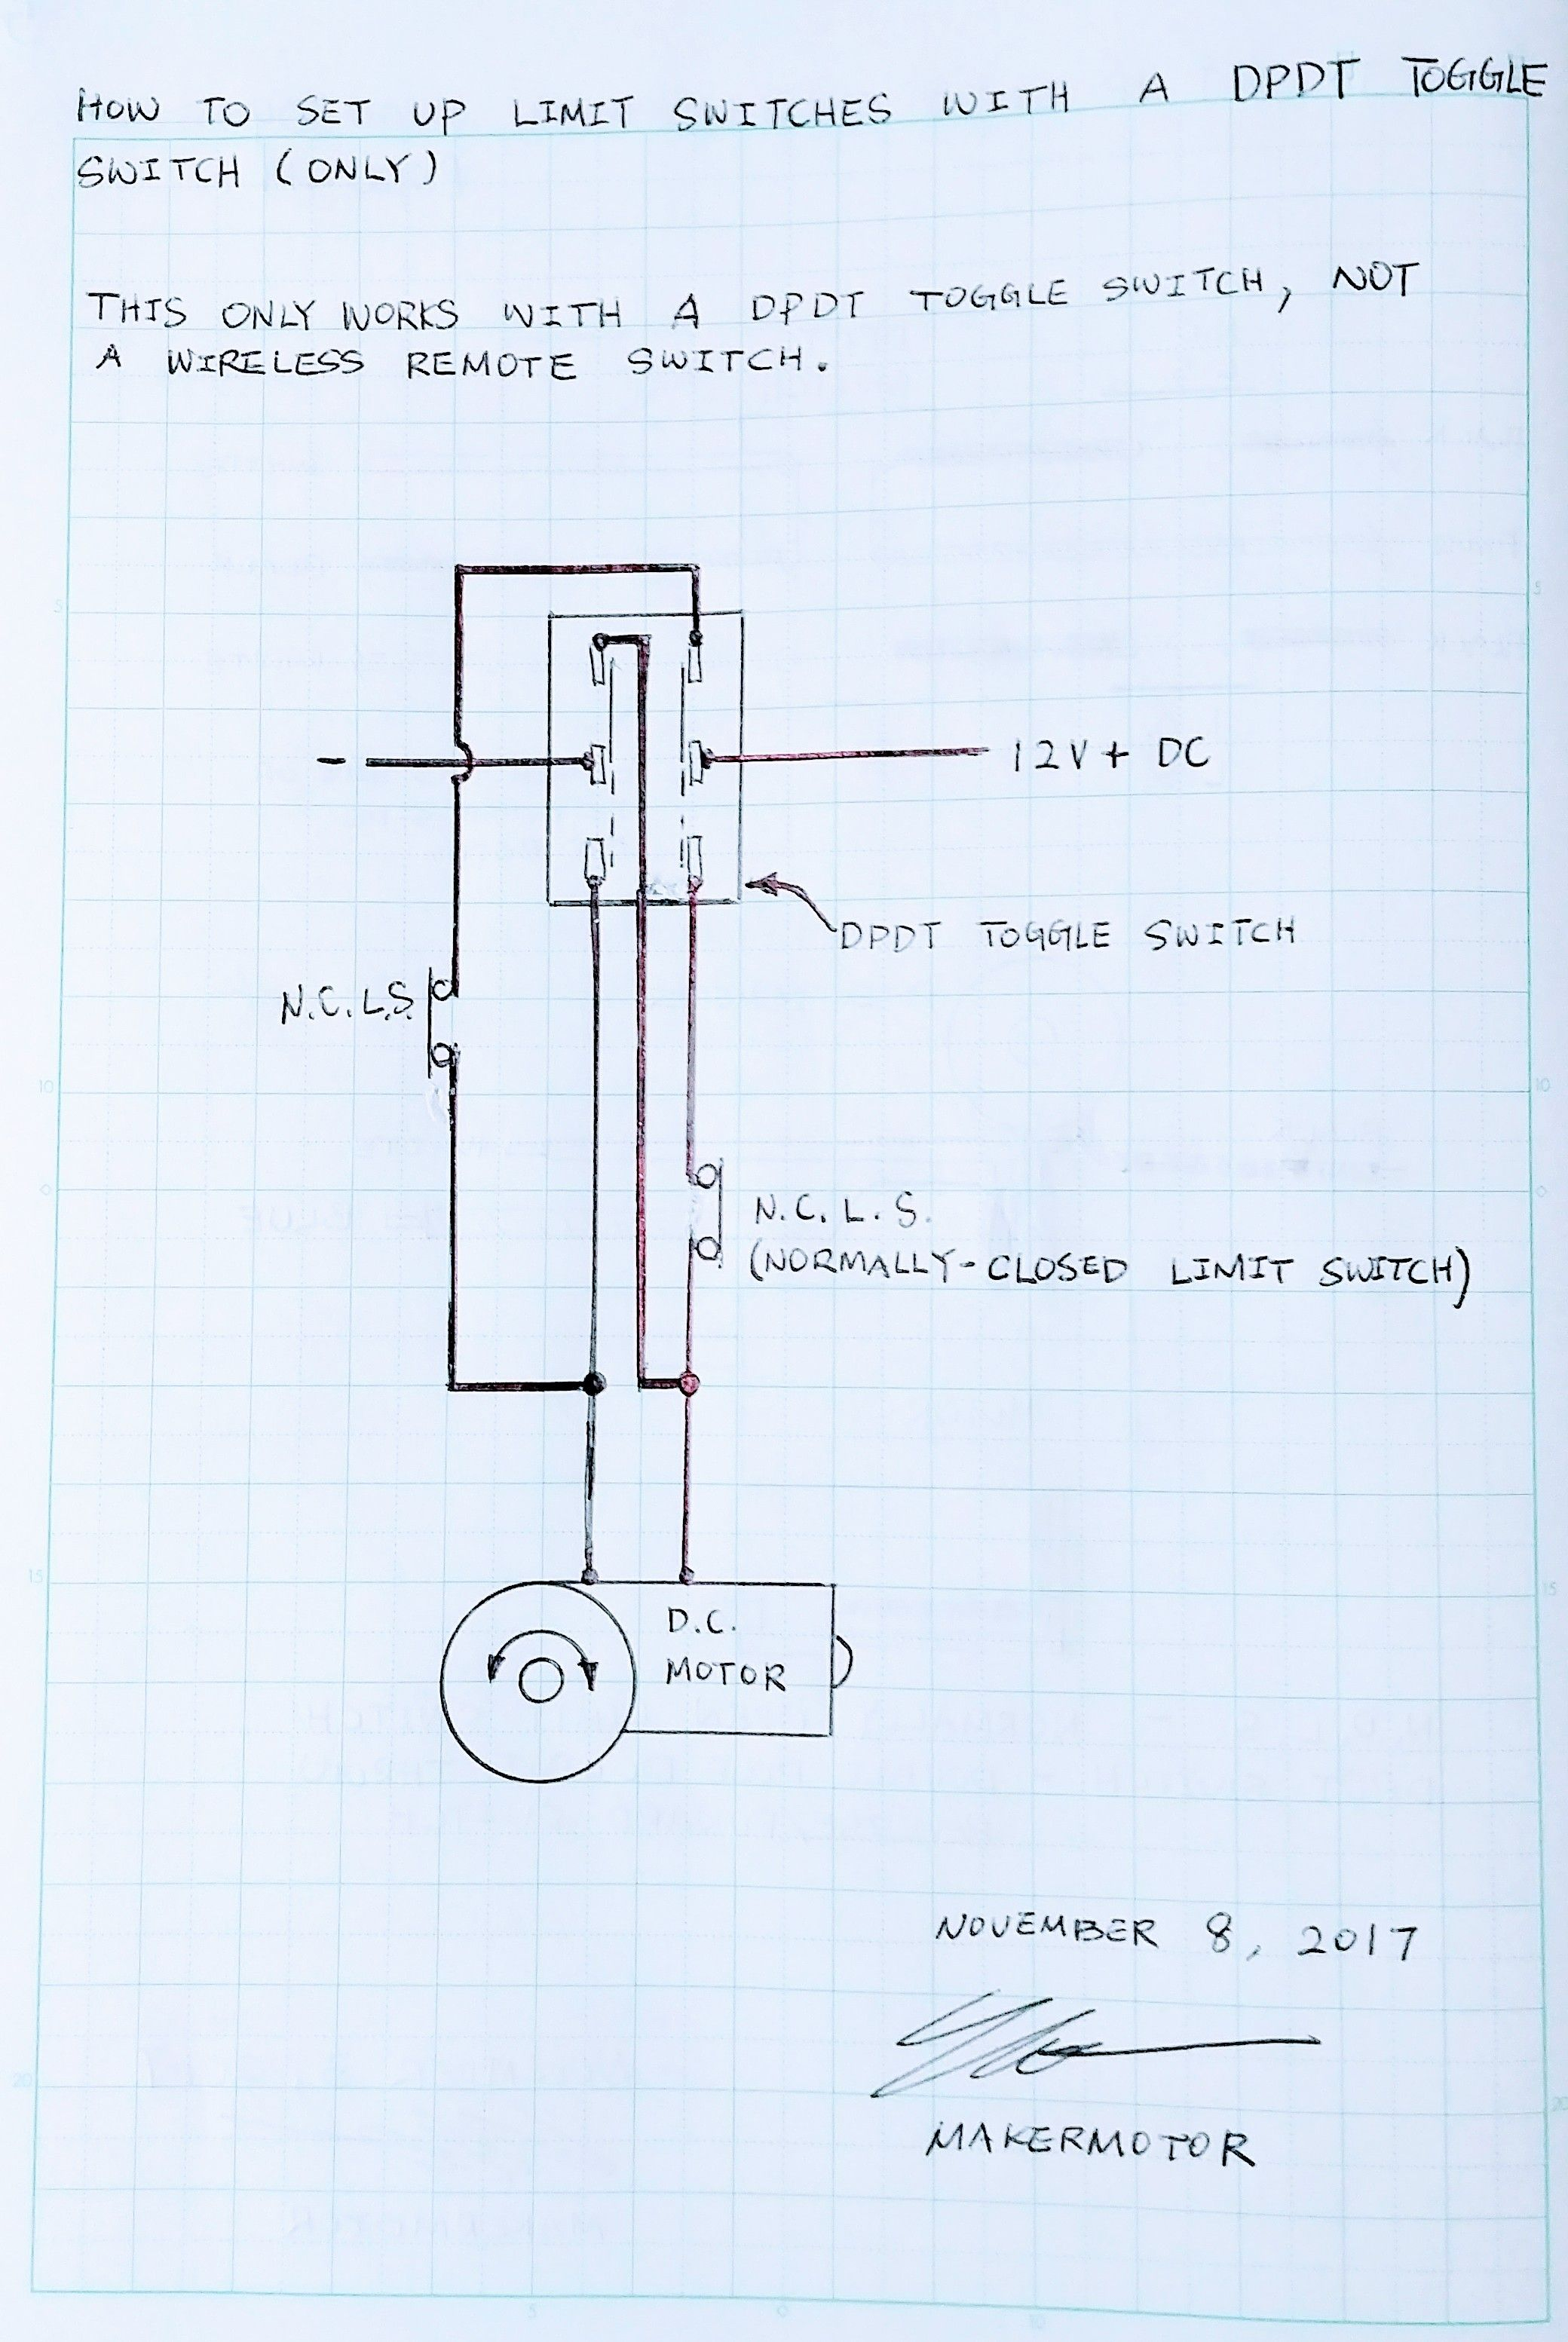 Awe Inspiring How To Set Up Limit Switches With A Wired Dpdt Switch For Reverse Wiring Cloud Eachirenstrafr09Org